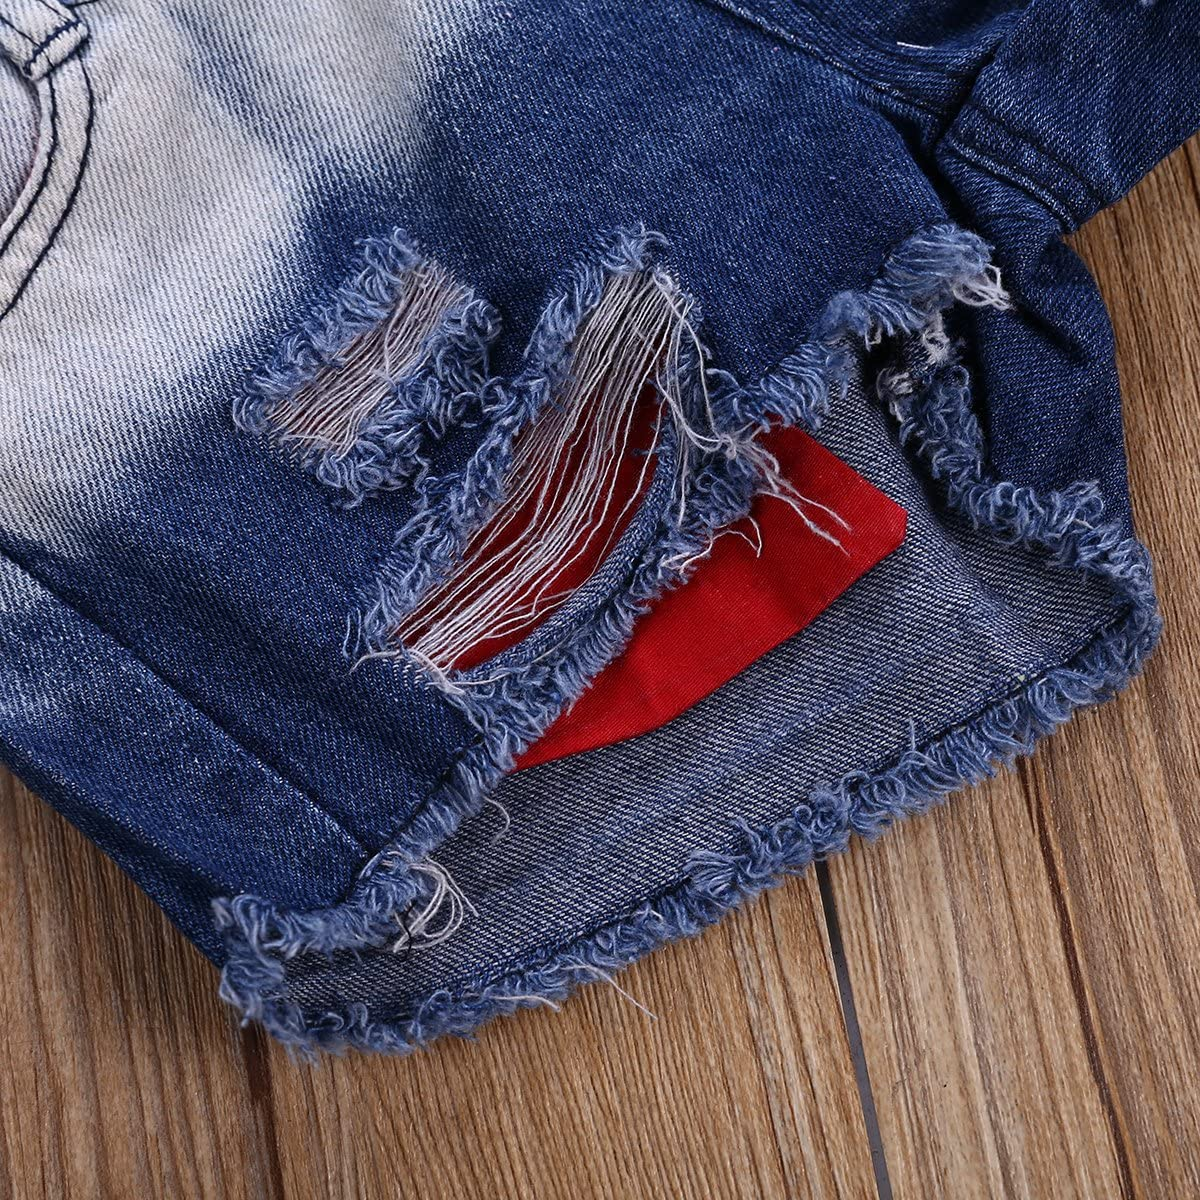 2Pcs//Set Toddler Baby Girls Denim Outfits Sleeveless Tassels Vest Tops+Ripped Jean Shorts Pant Summer Clothes Set